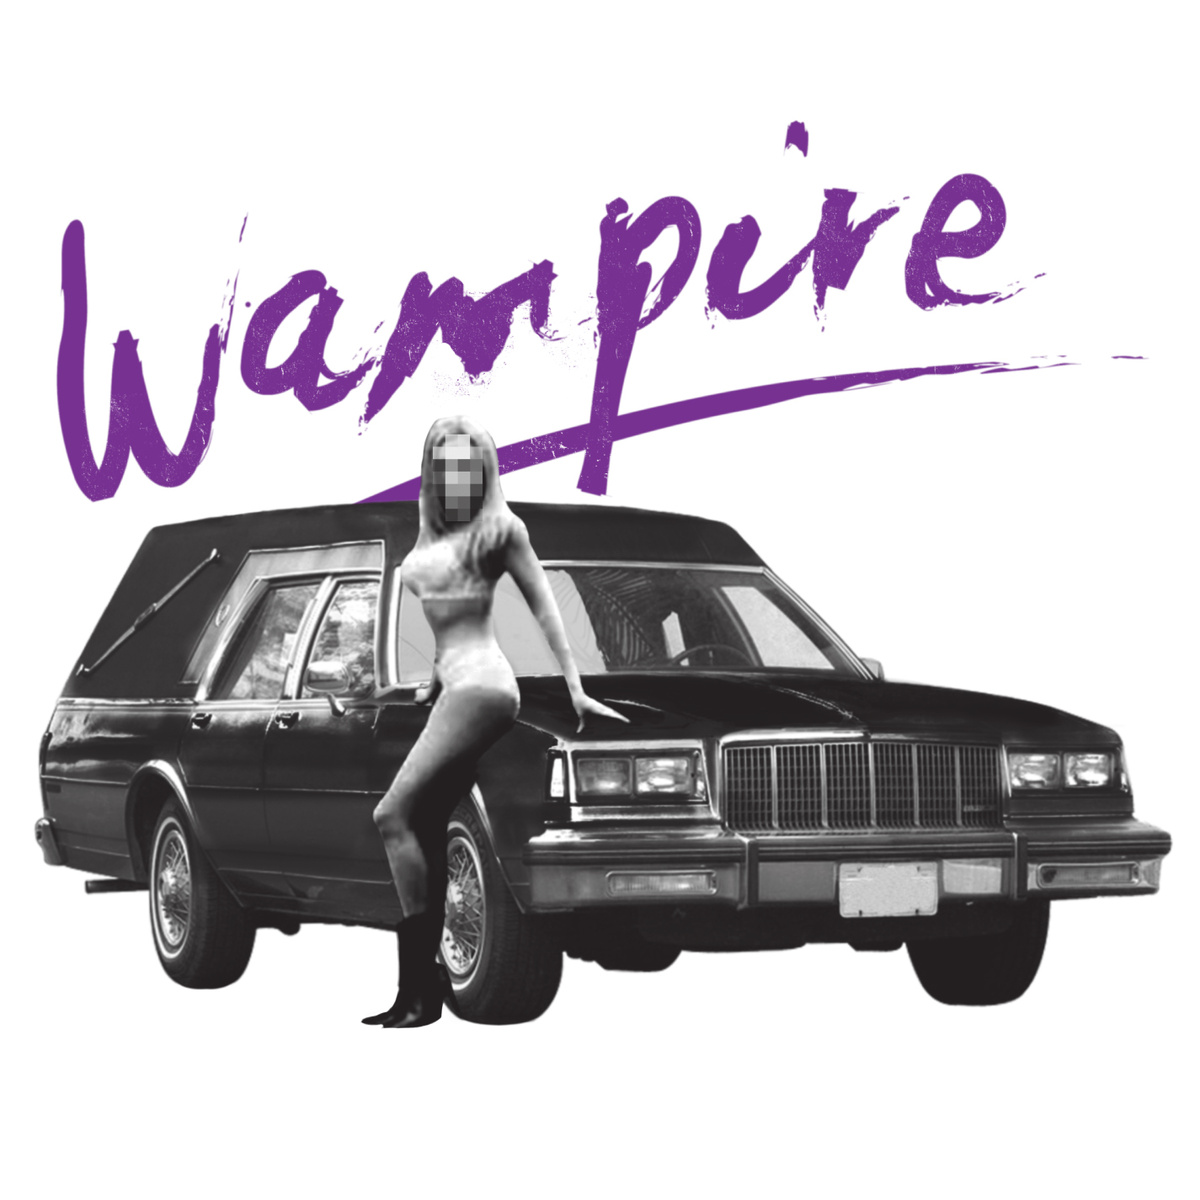 Northern Transmissions reviews 'The Hearse' by 'Wampire'